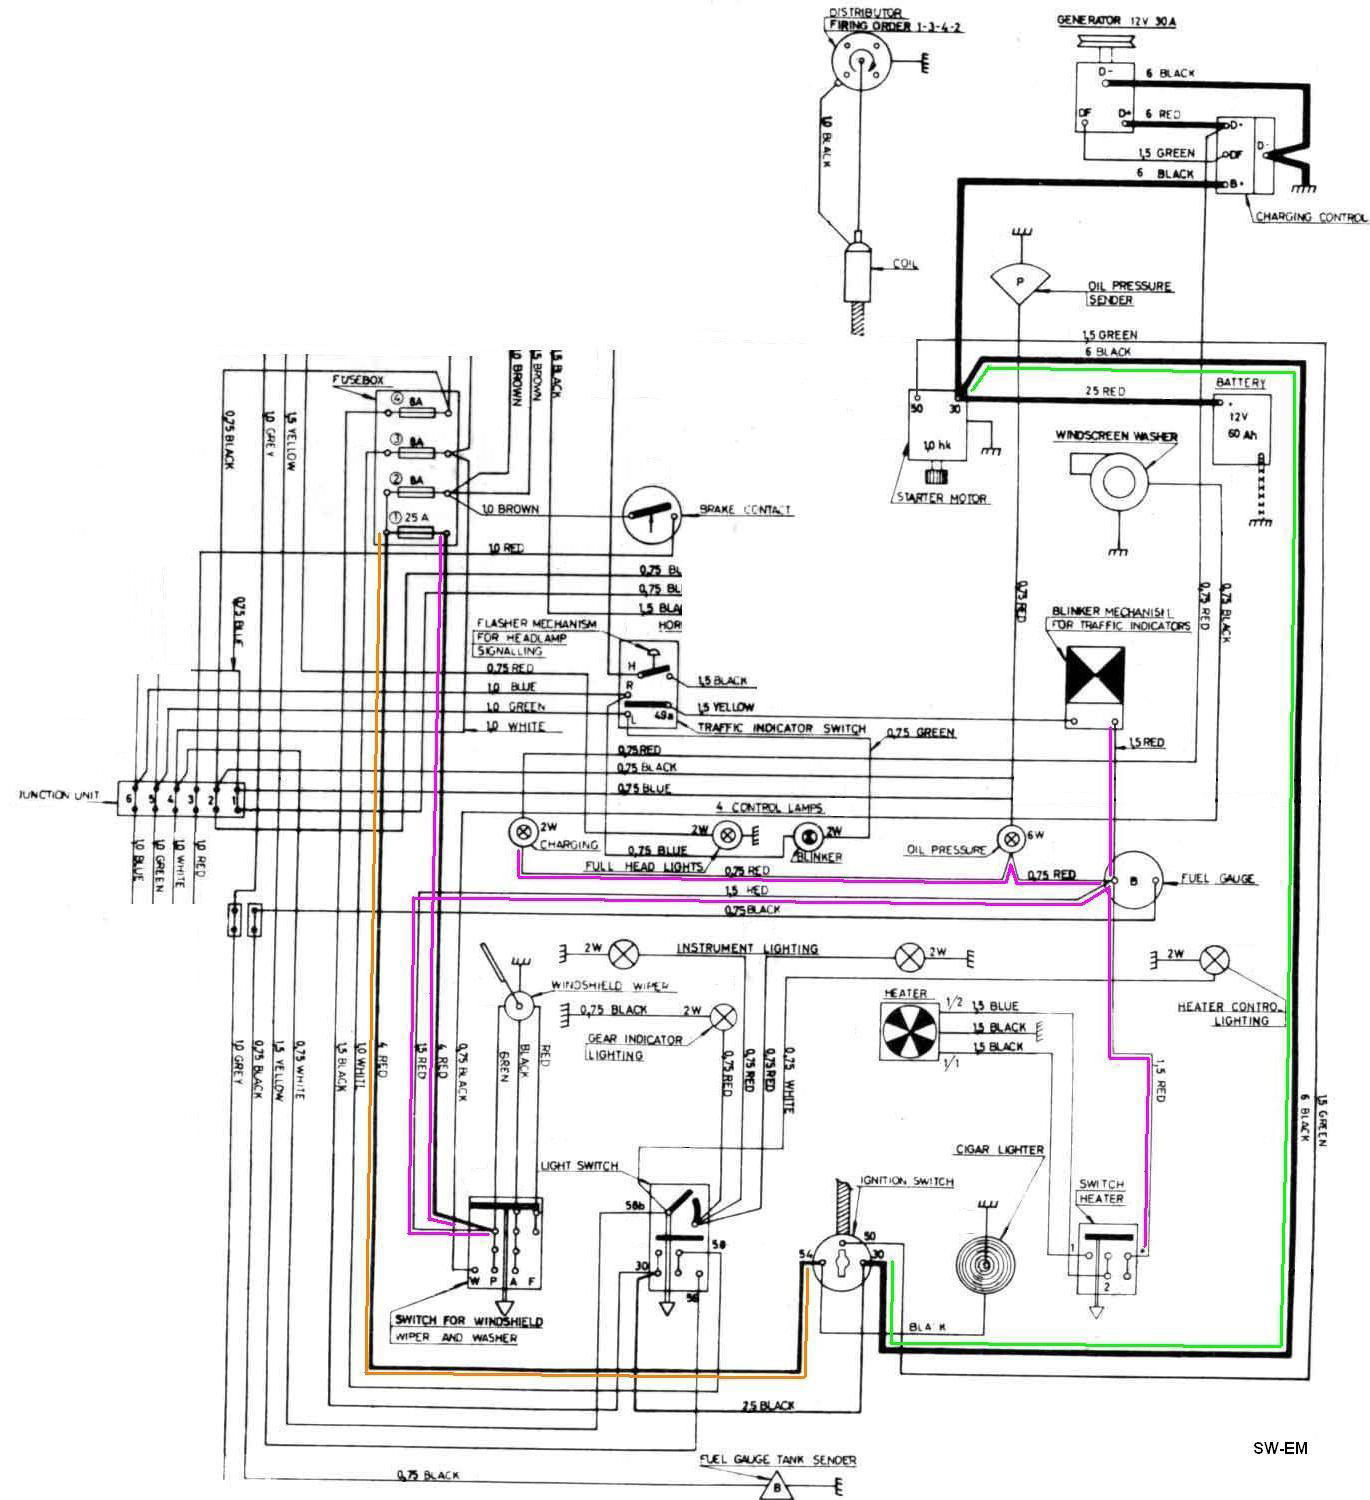 IGN SW wiring diag 122 markup 1800 ignition wiring swedish vs british design volvo penta wiring harness diagram at bayanpartner.co